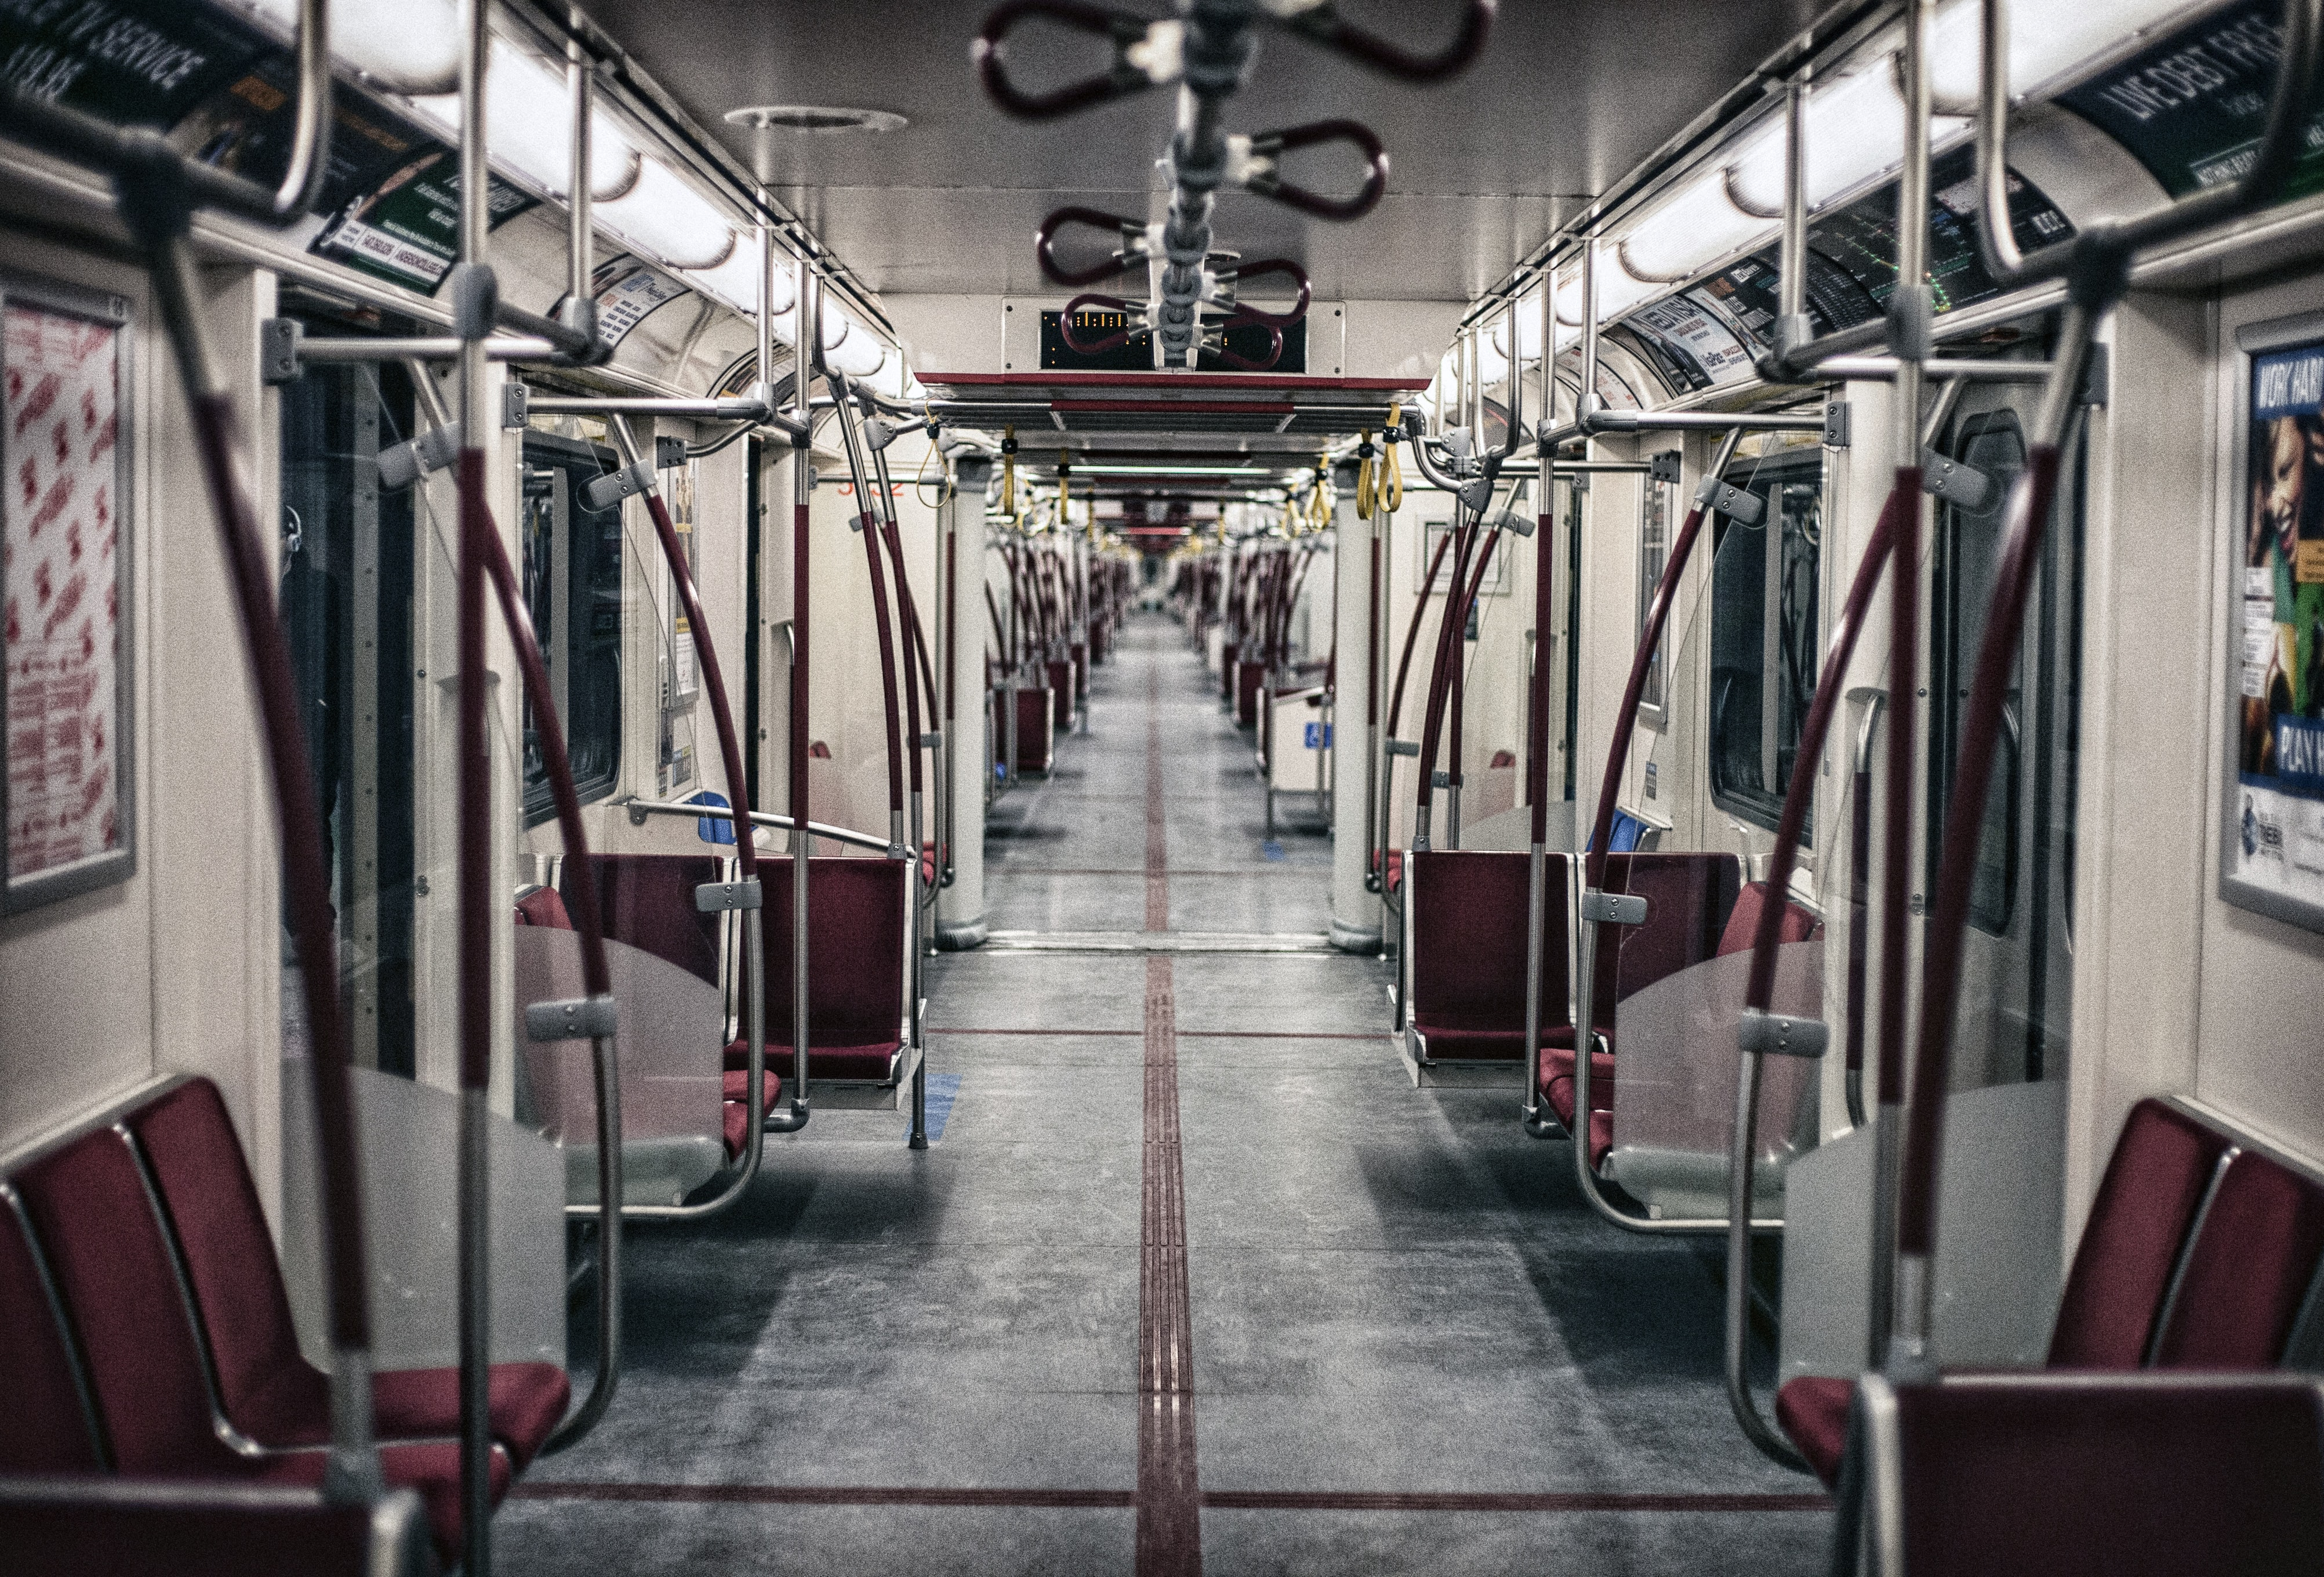 View of a long empty subway train interior in Toronto.